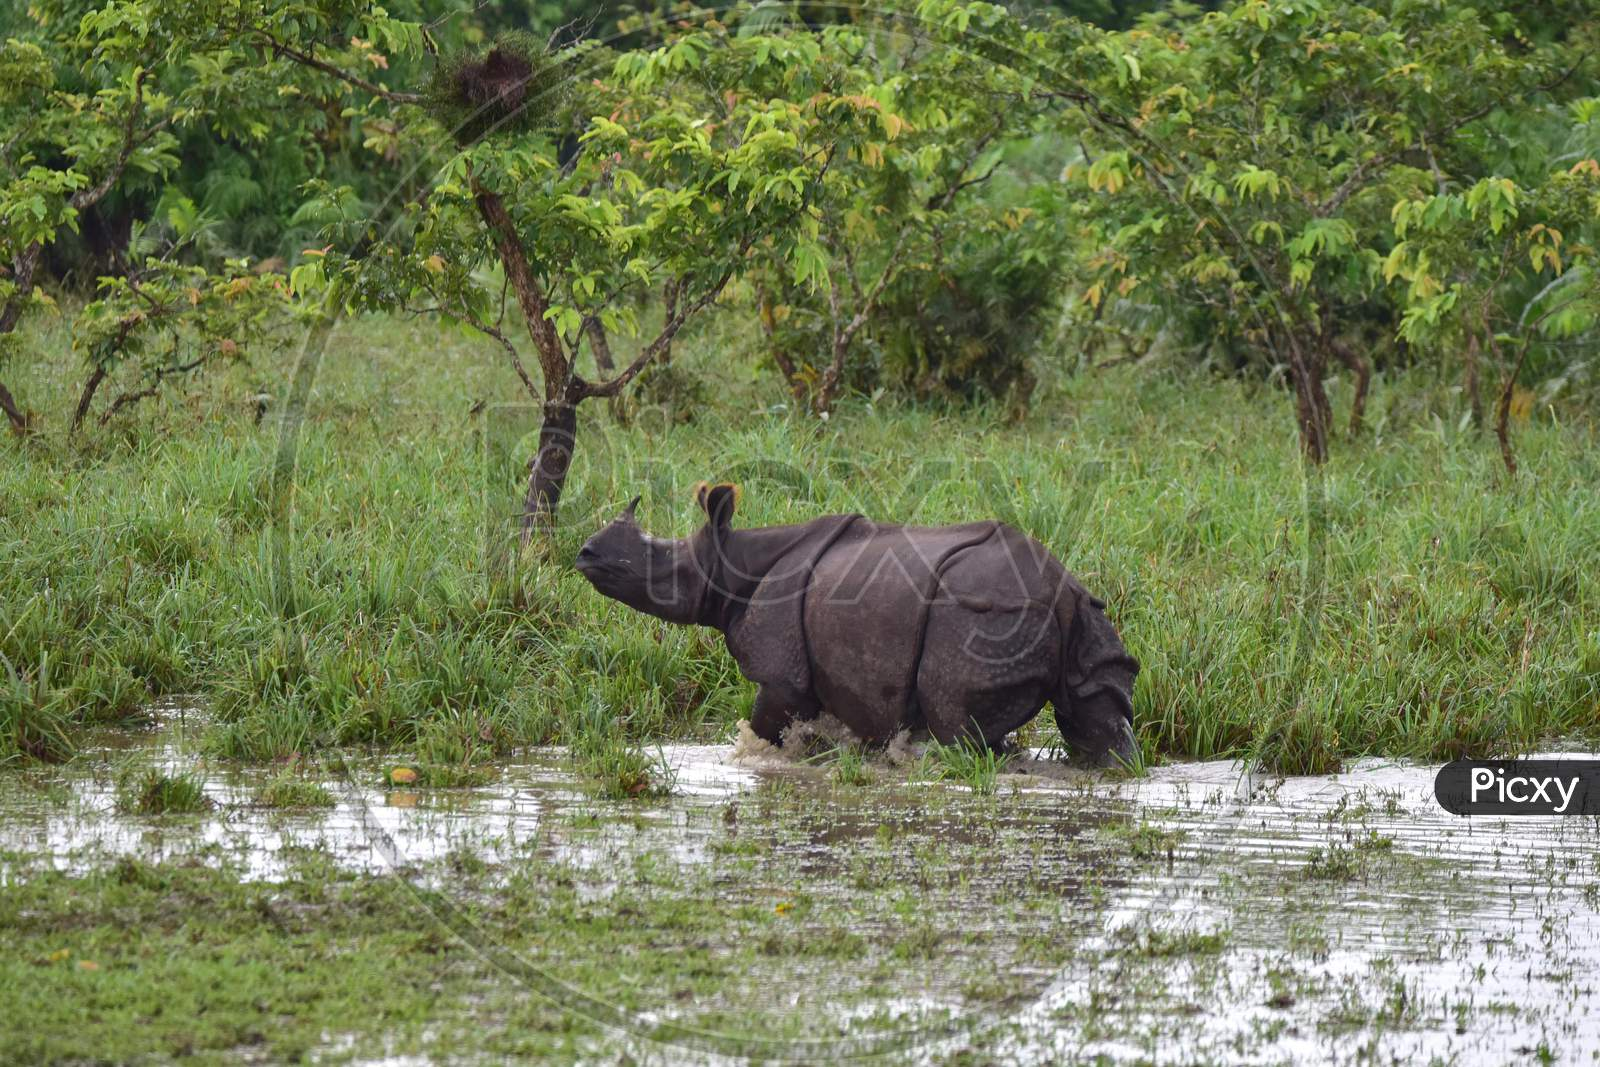 A rhino takes shelter on high ground to escape the flood in the Kaziranga National Park in Nagaon, Assam on July 16, 2020